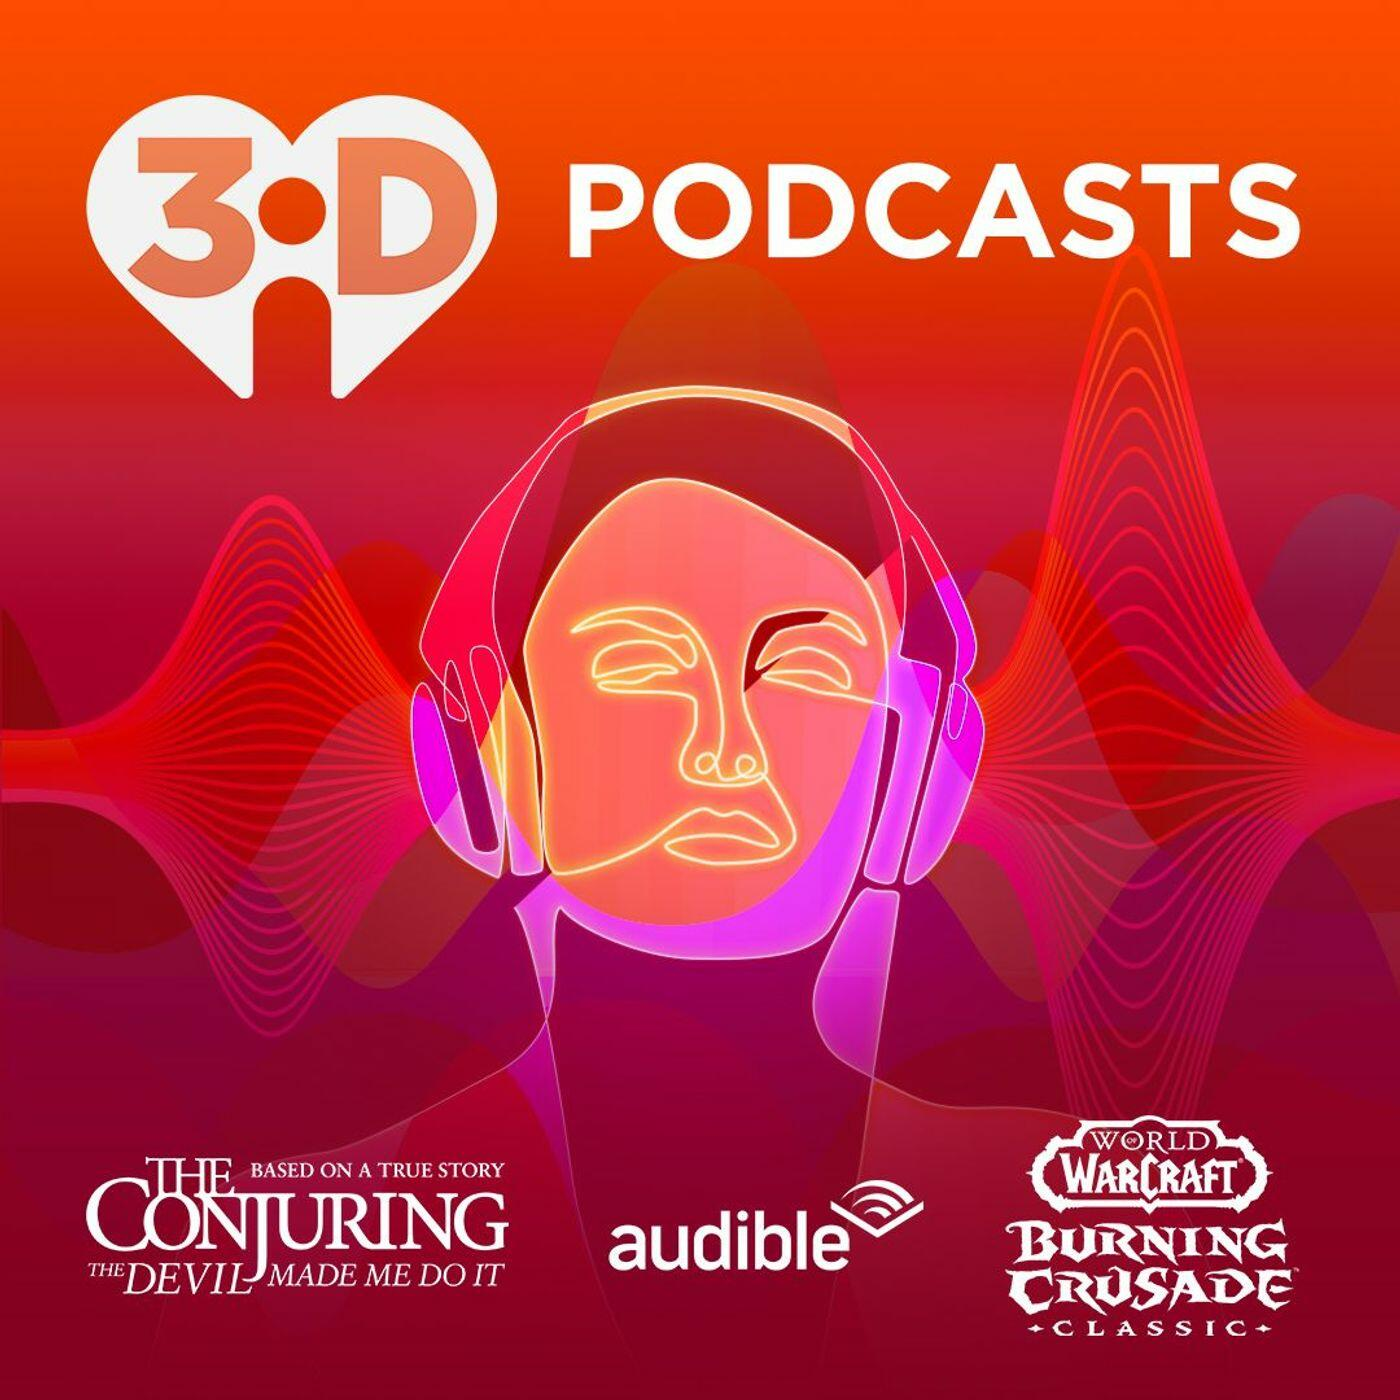 iHeart 3D Podcasts